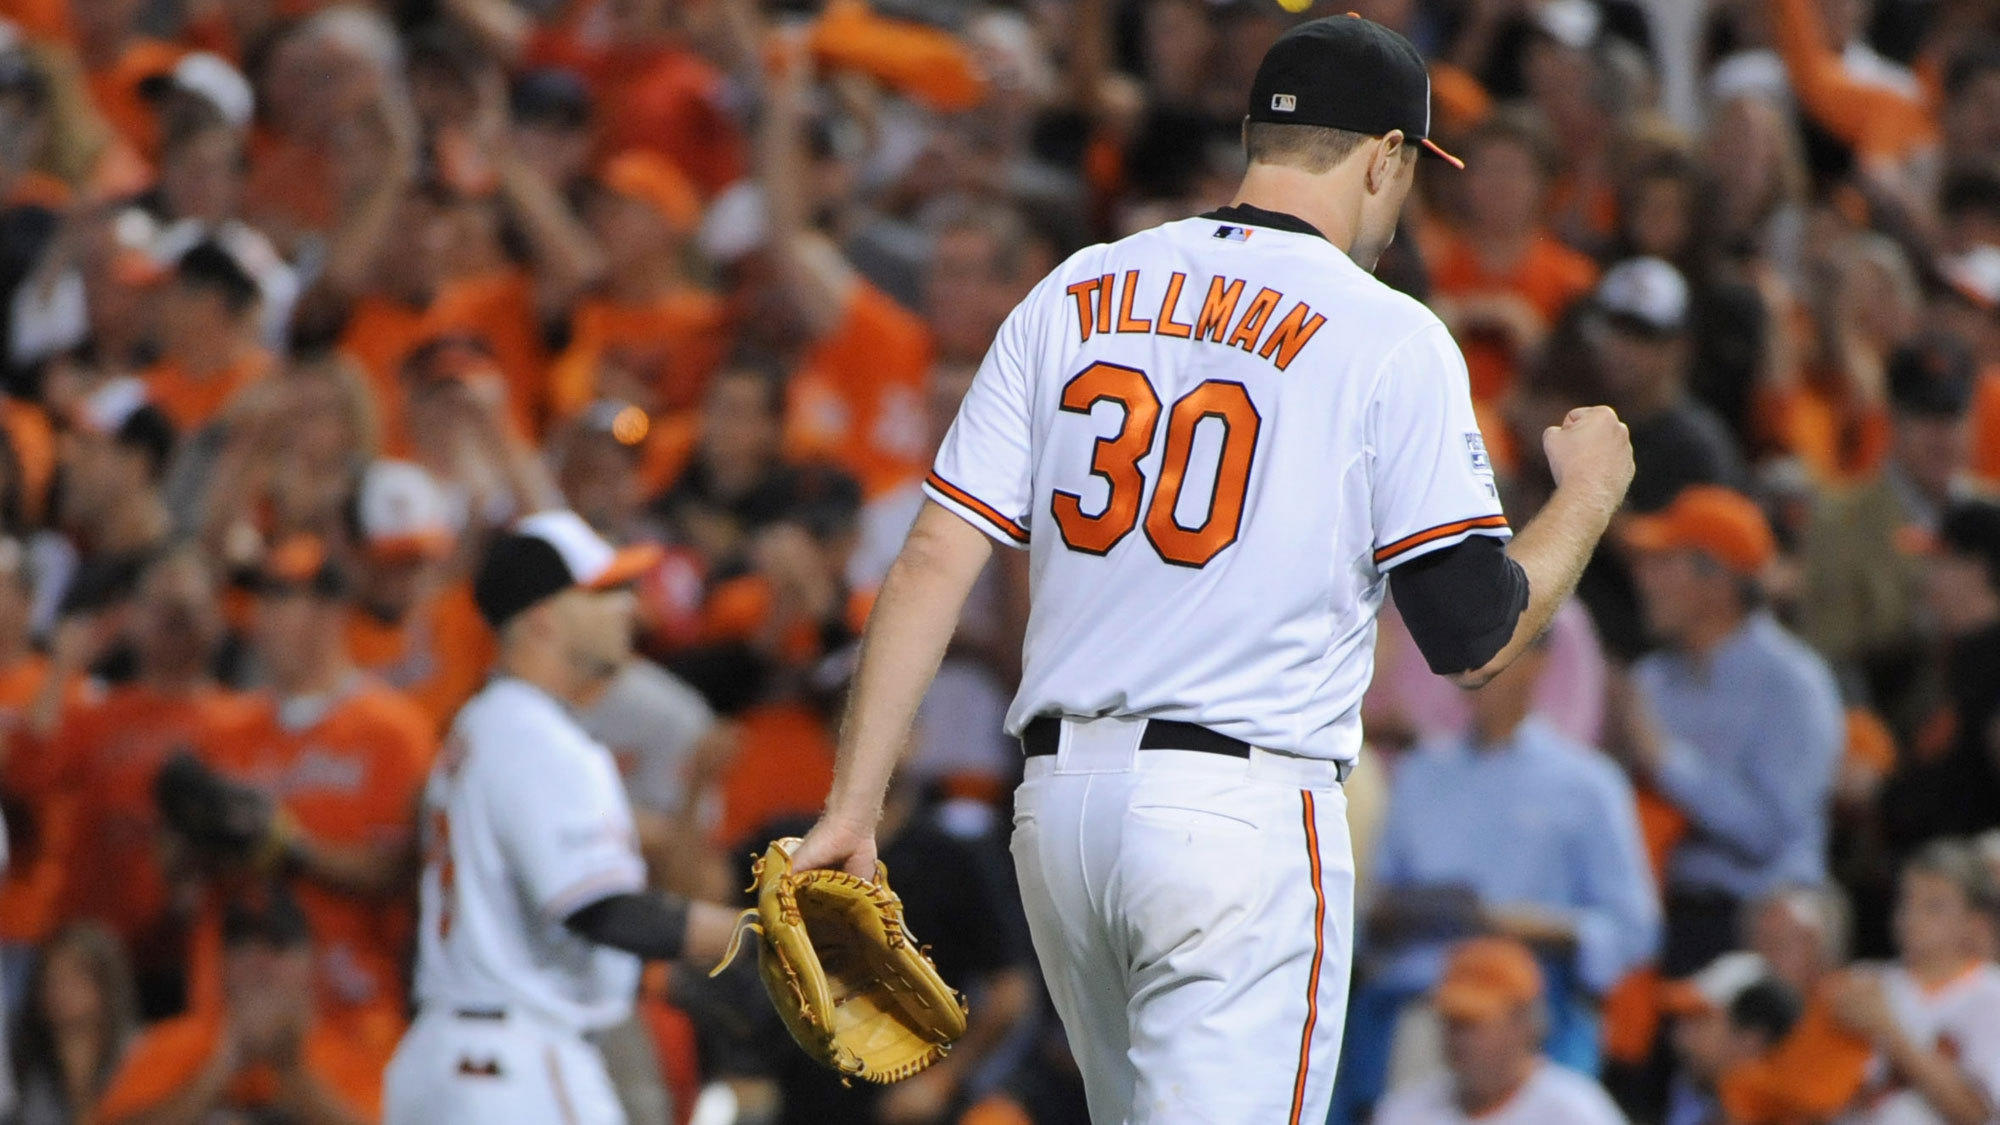 Chris Tillman celebrates getting out of the 5th inning of Game 1 of the ALDS.